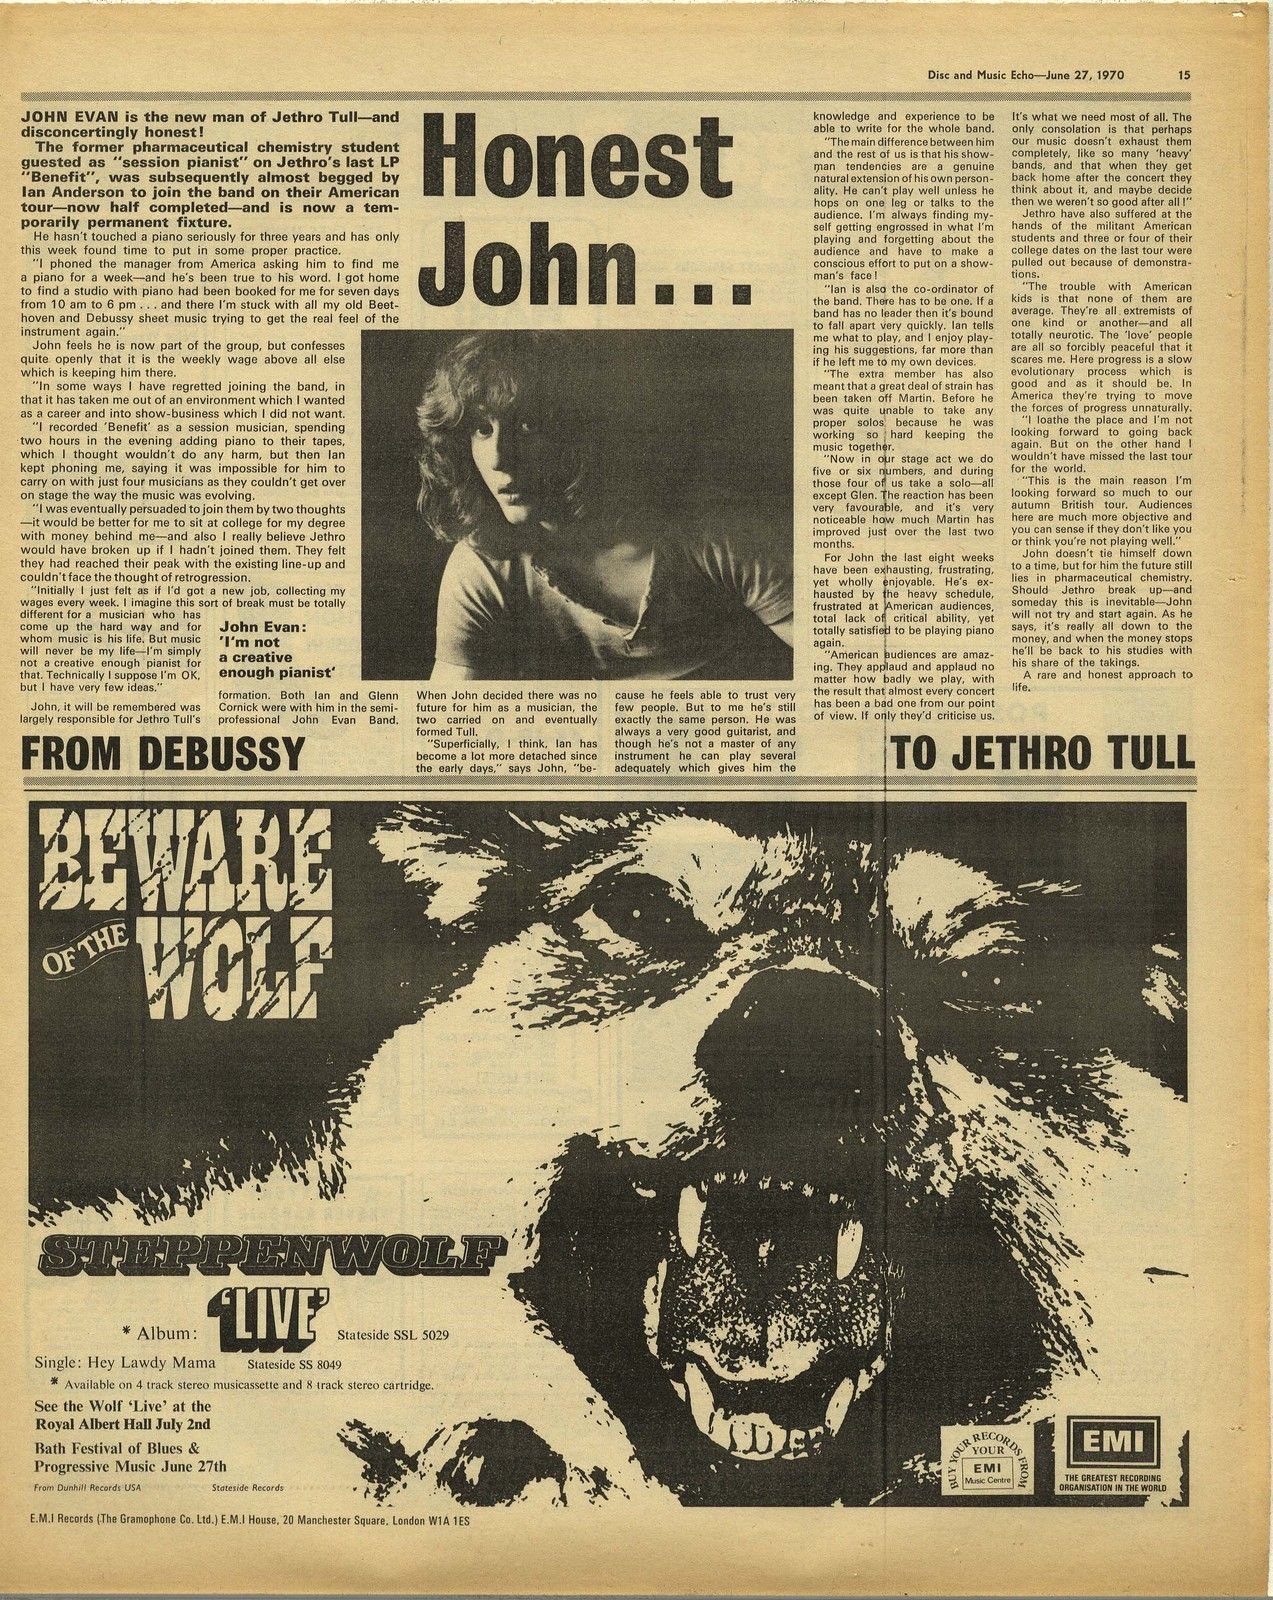 STEPPENWOLF Live LP advert Jethro Tull Article Original Vintage music Press  cutting/clipping 1970